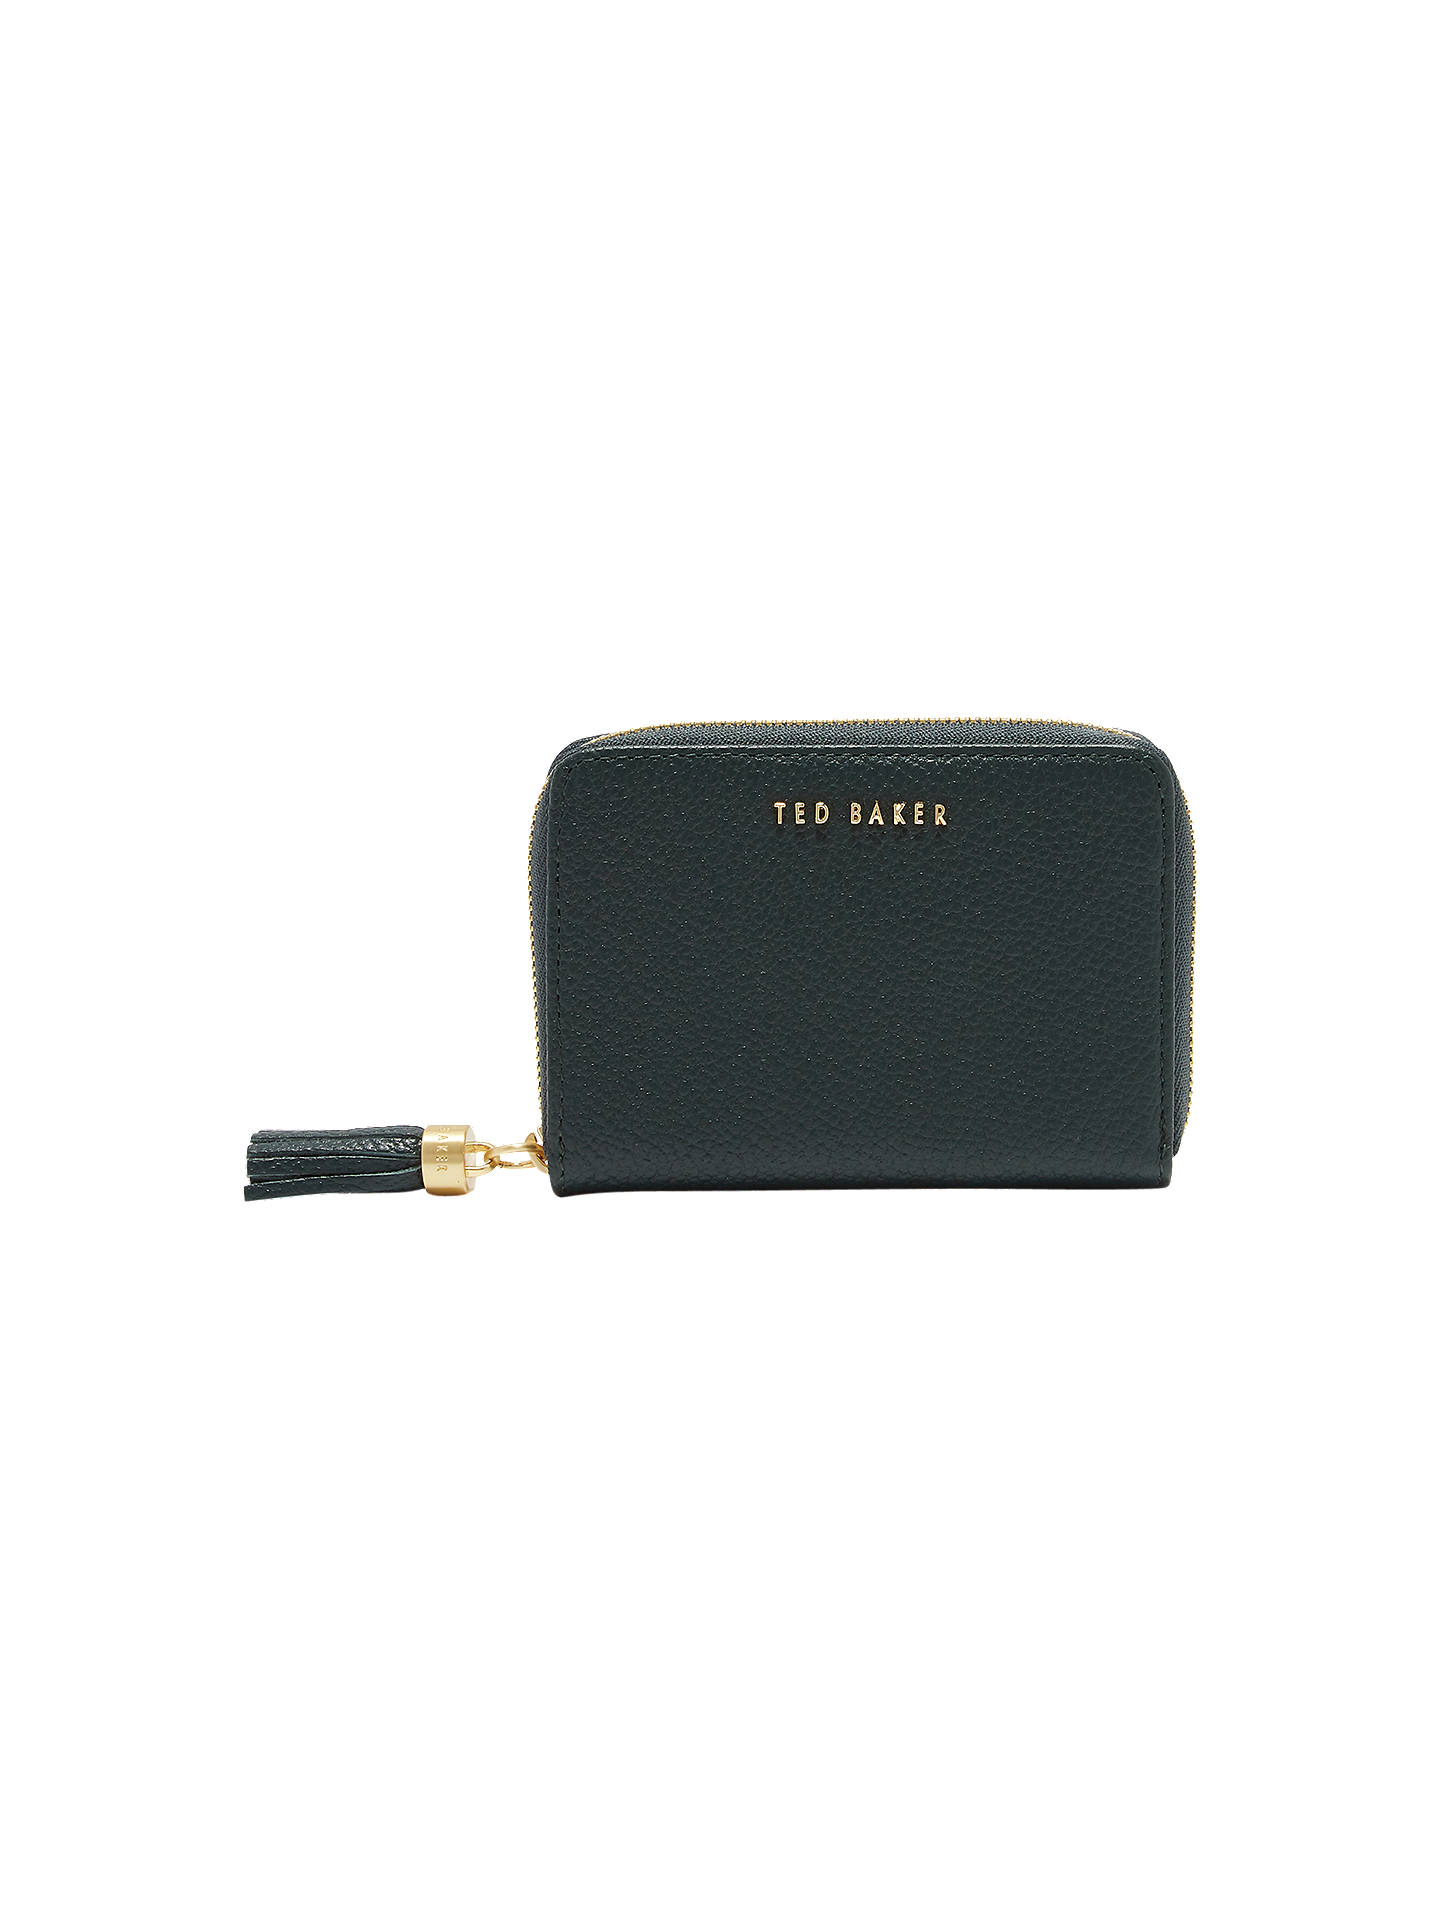 BuyTed Baker Sabel Small Leather Zip Around Matinee Purse, Dark Green Online at johnlewis.com